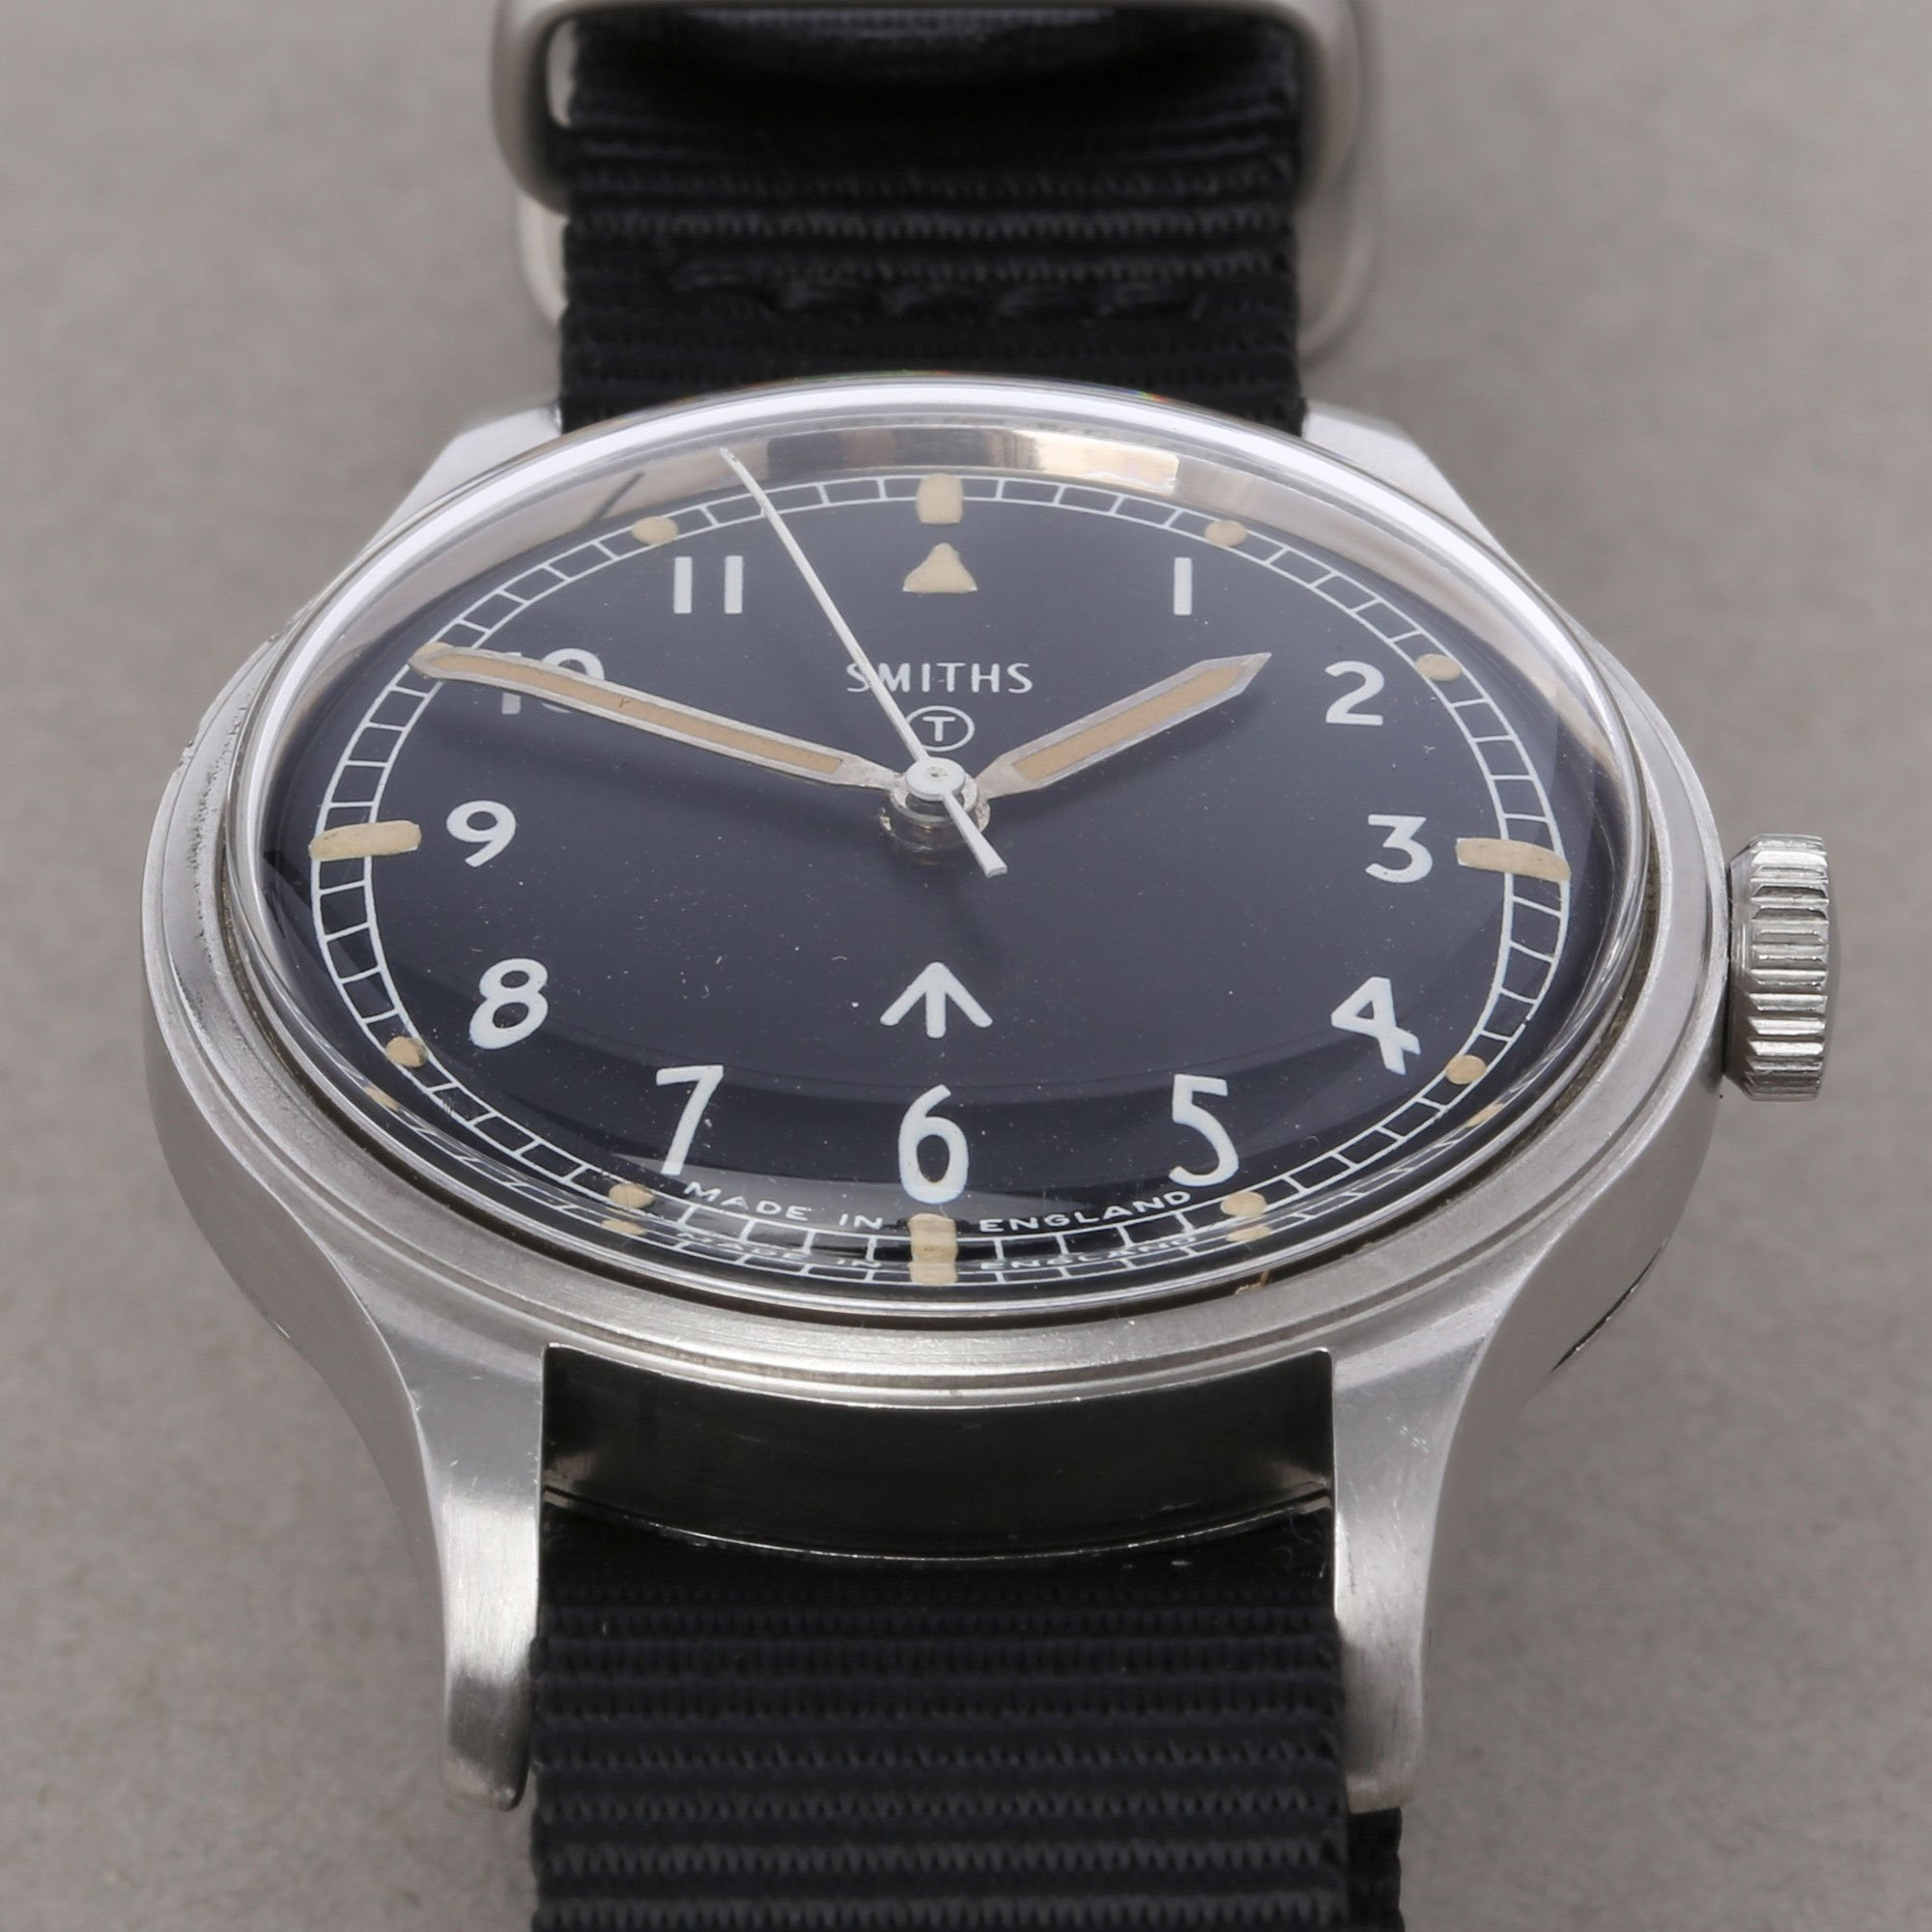 Smiths Vintage W10 Military Stainless Steel 89